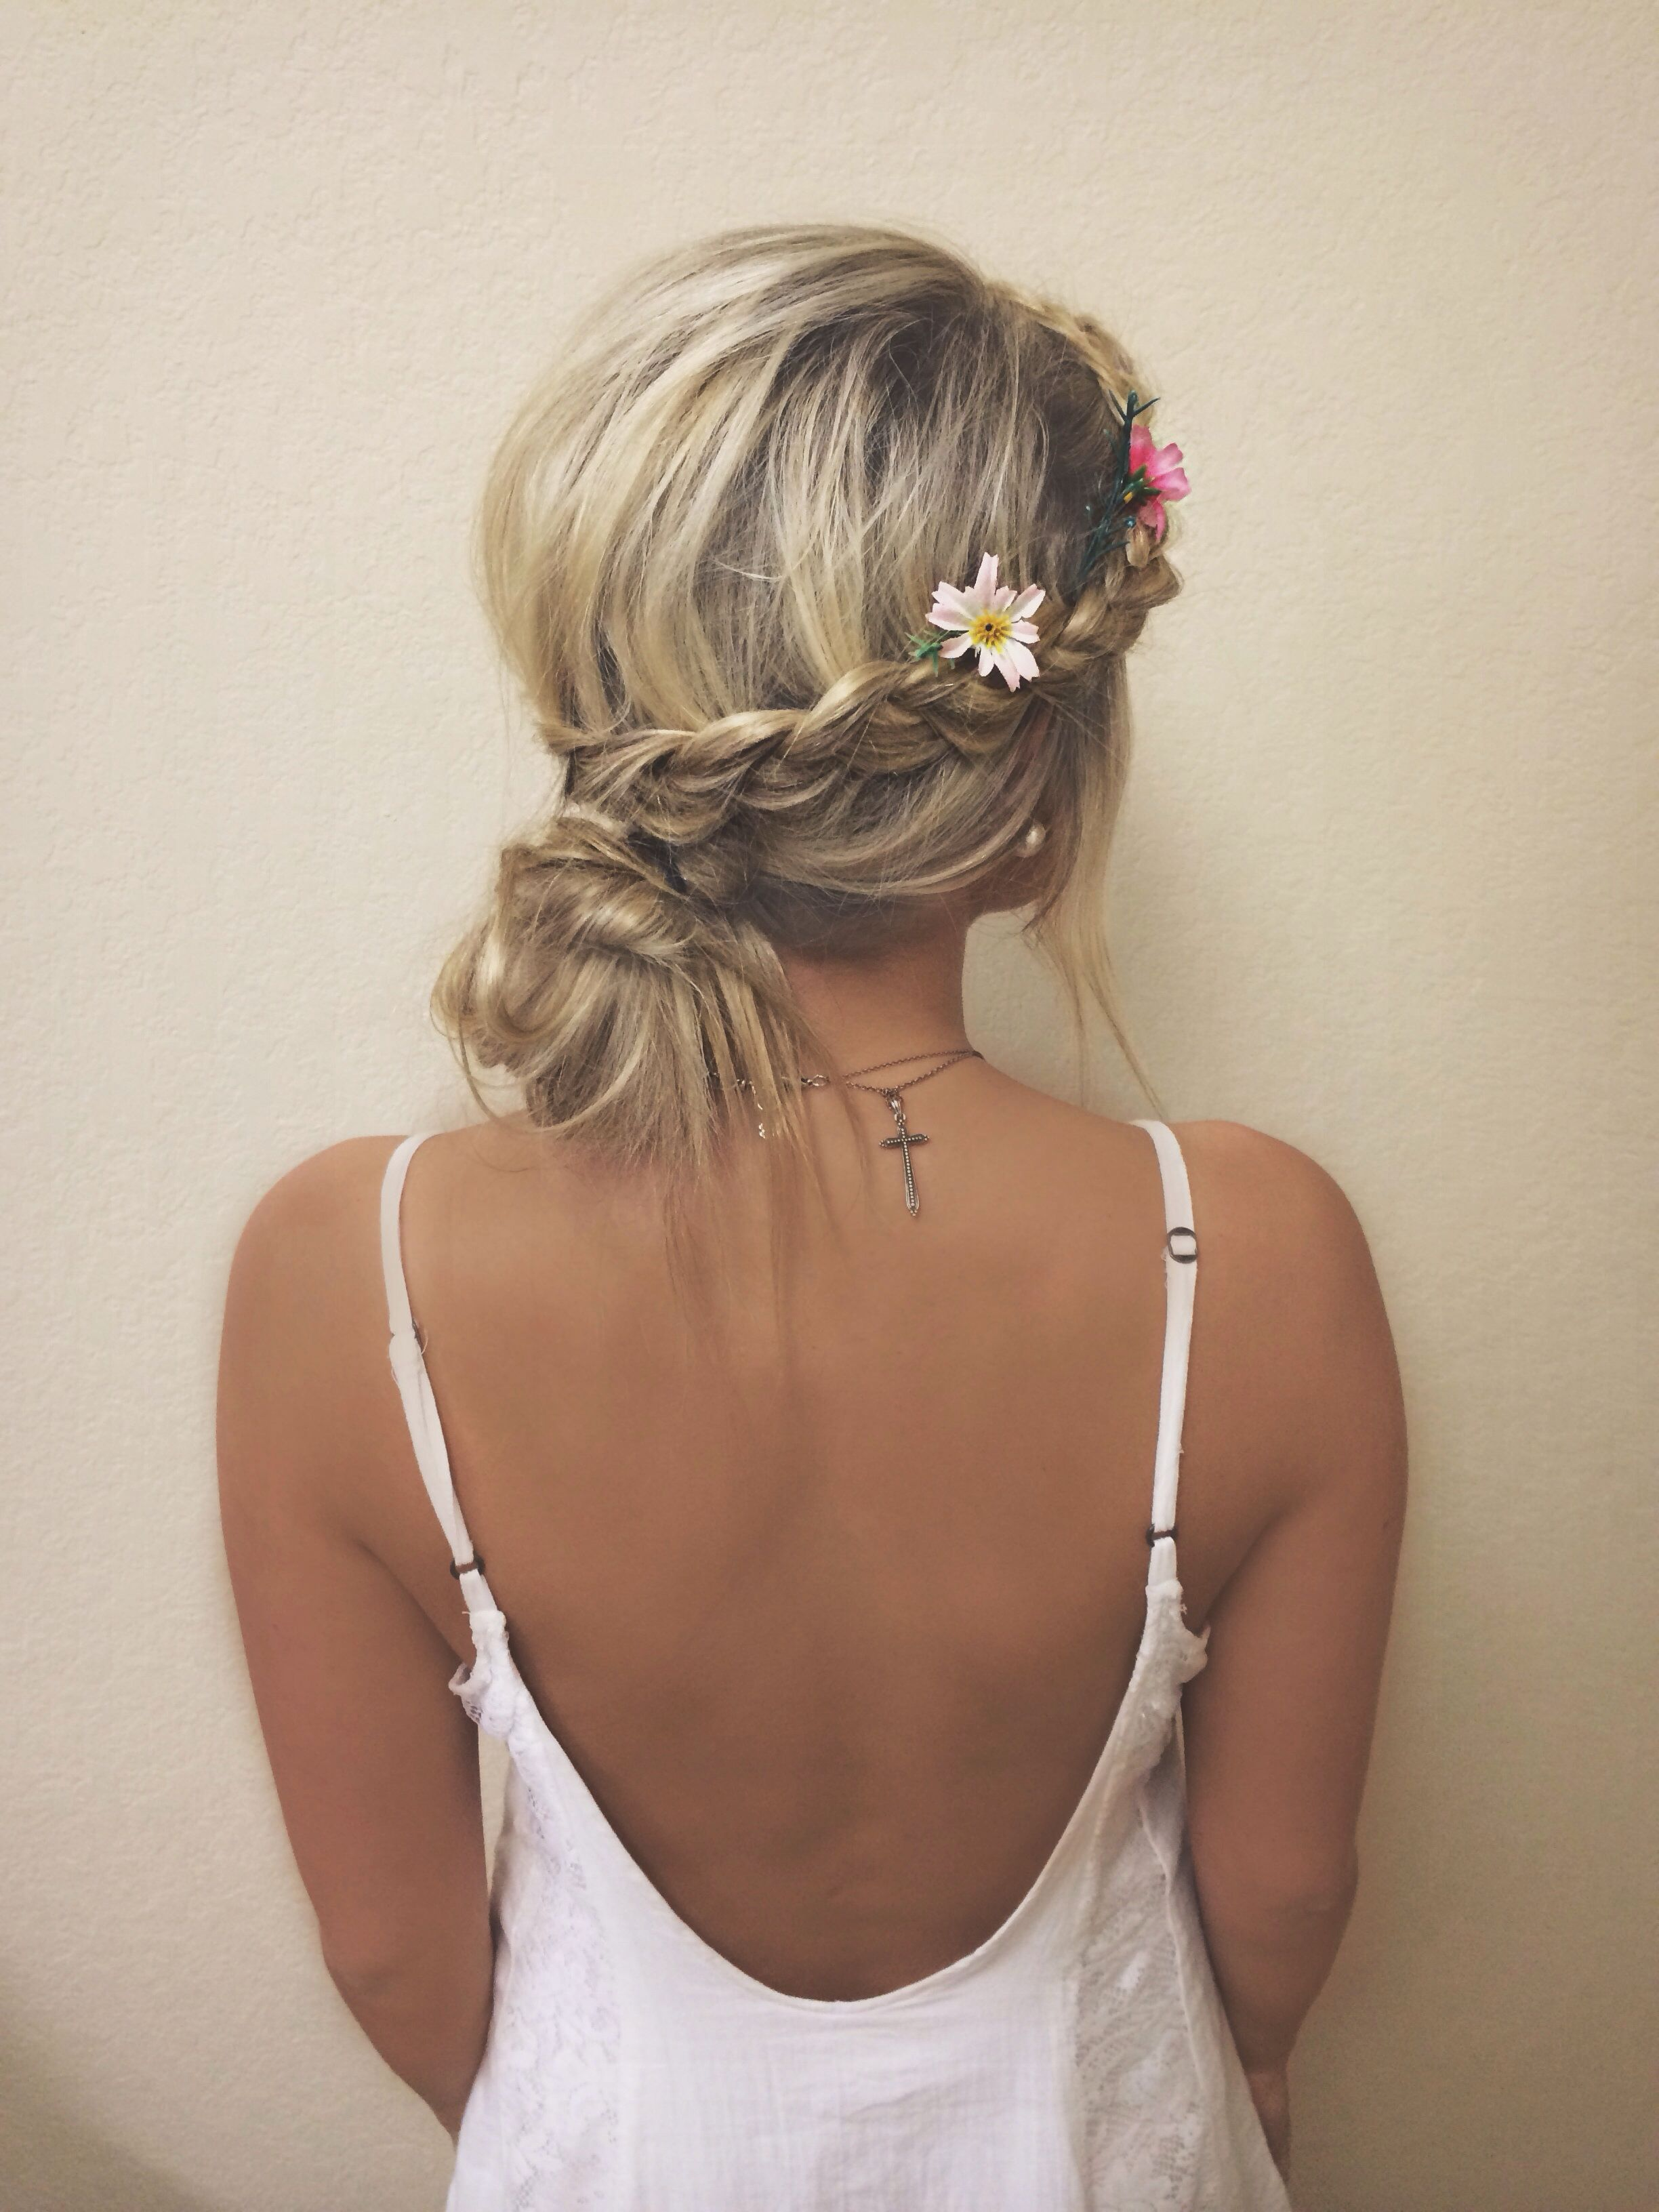 Pin by sofia vela on hair pinterest prom hairstyles hair style